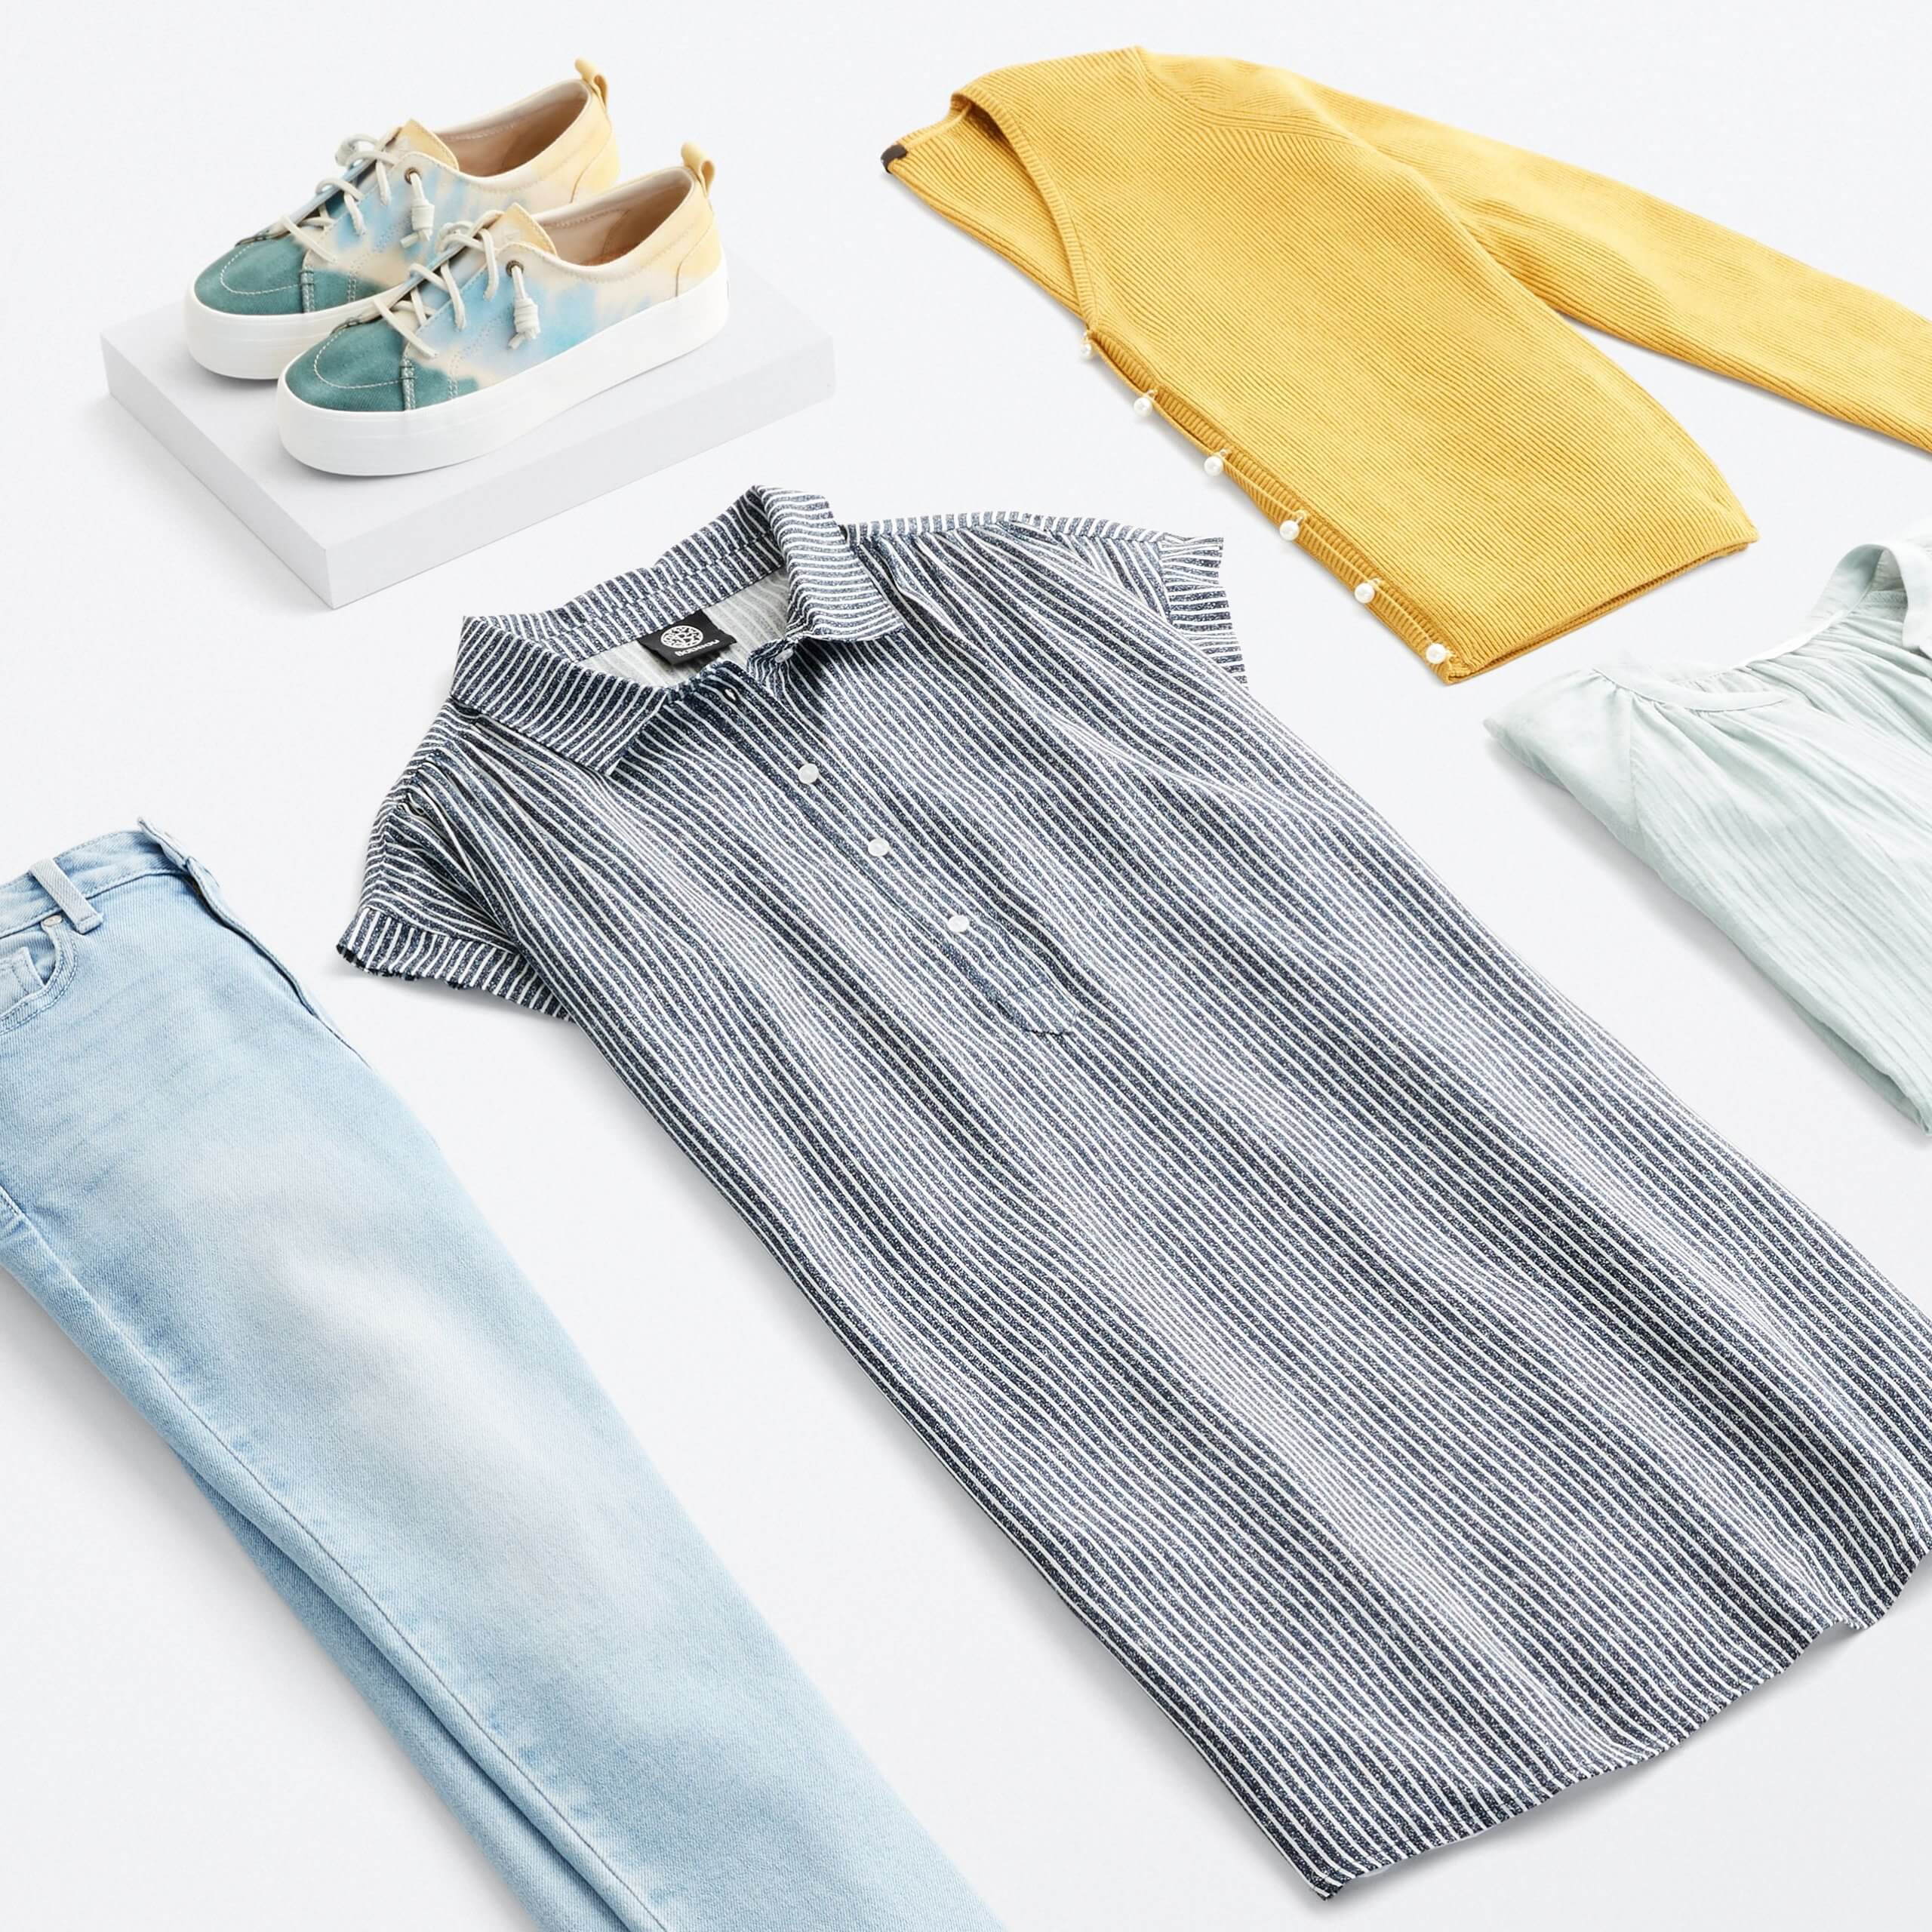 Stitch Fix Women's outfit laydown featuring grey striped collared dress, yellow cardigan, mint ruffle top, light wash jeans and green, blue and yellow tie-dye sneakers.